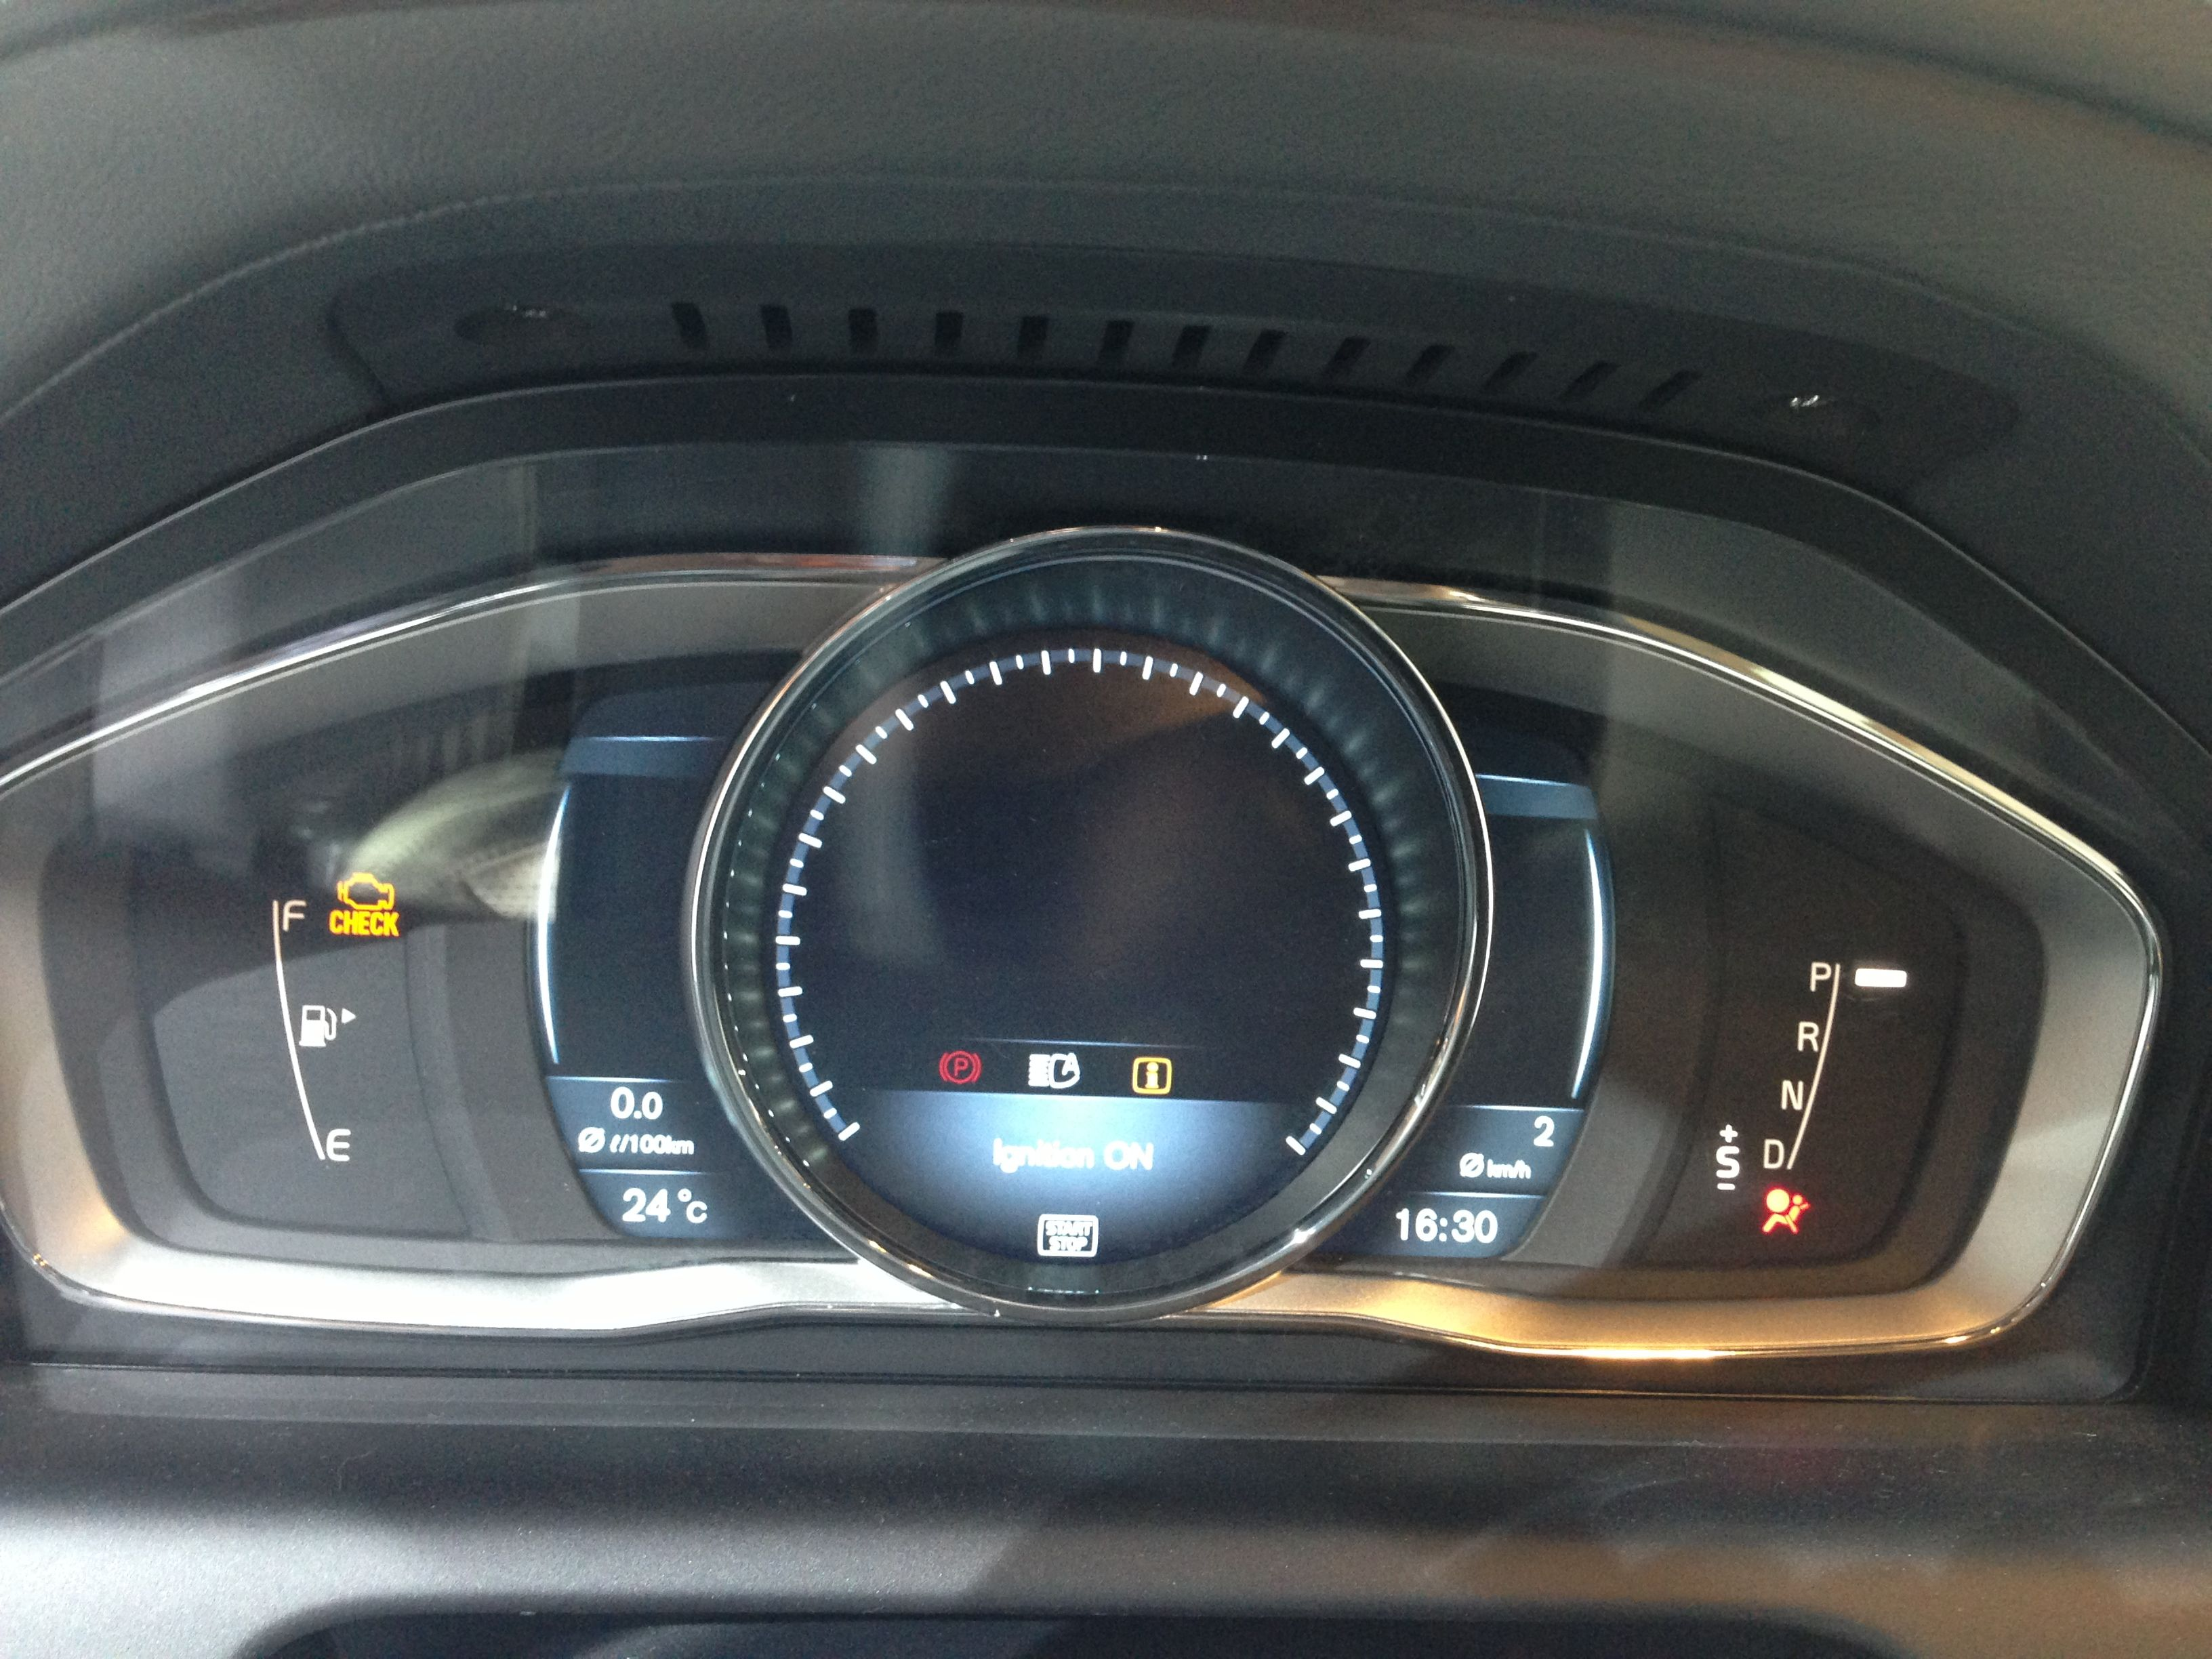 The new TFT display dashboard for the 2014 Volvo XC60